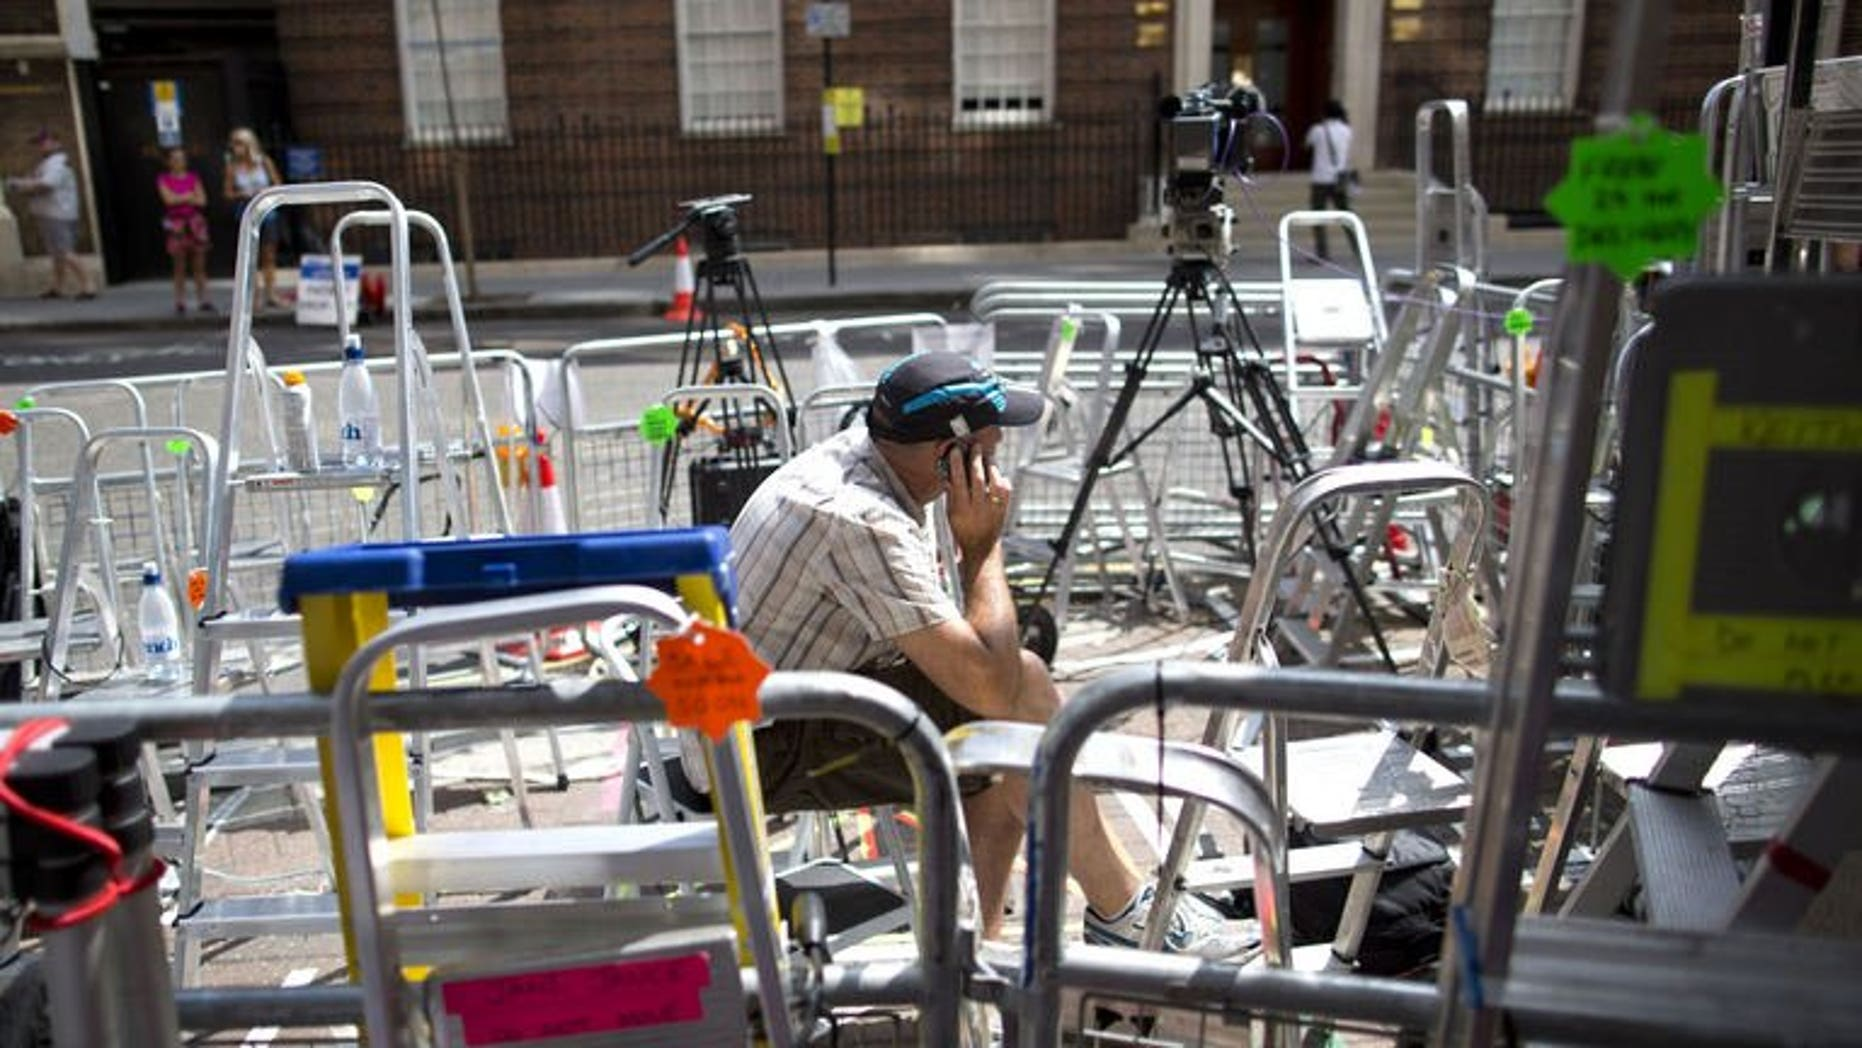 A journalist speaks on his mobile phone outside the Lindo Wing of St Mary's hospital in London, on July 13, 2013, where Prince William and his wife Catherine's baby will be born. The hospital is ready, the Wikipedia page and Twitter accounts are up and Britain's famously creative press are running out of ideas. But Sunday arrived with no sign of the royal baby.